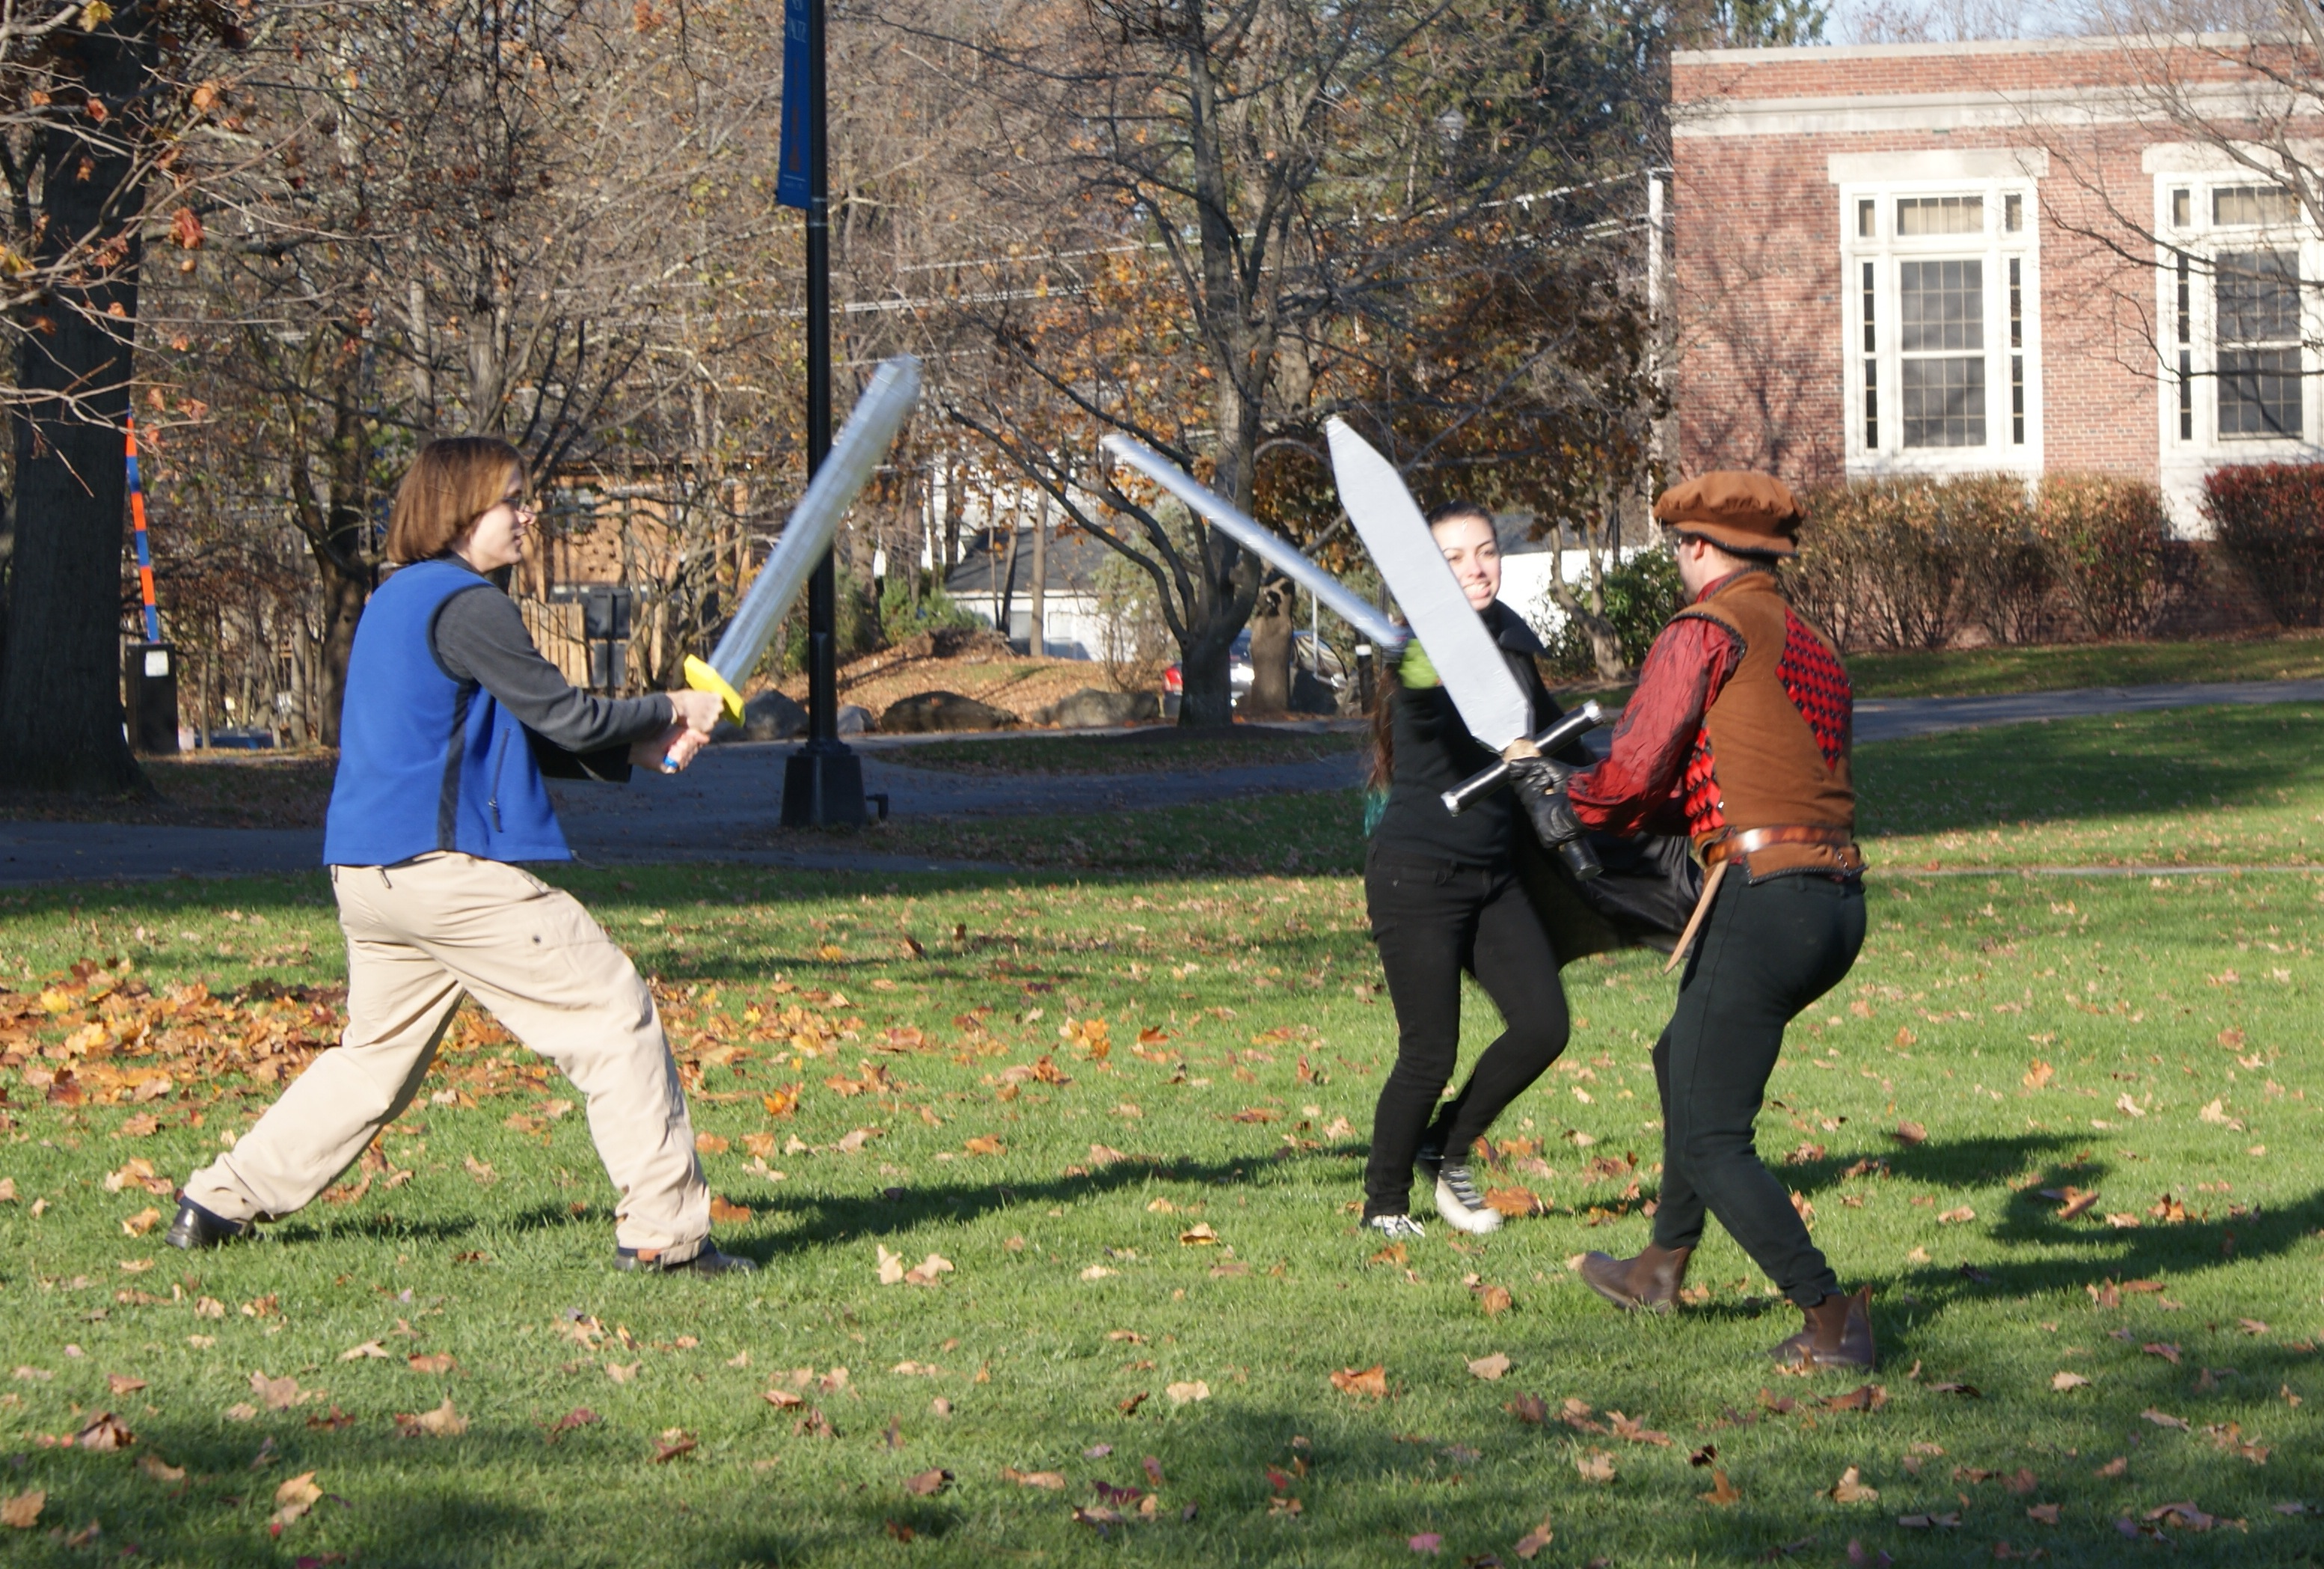 Braveheart Upstarts Come to Campus